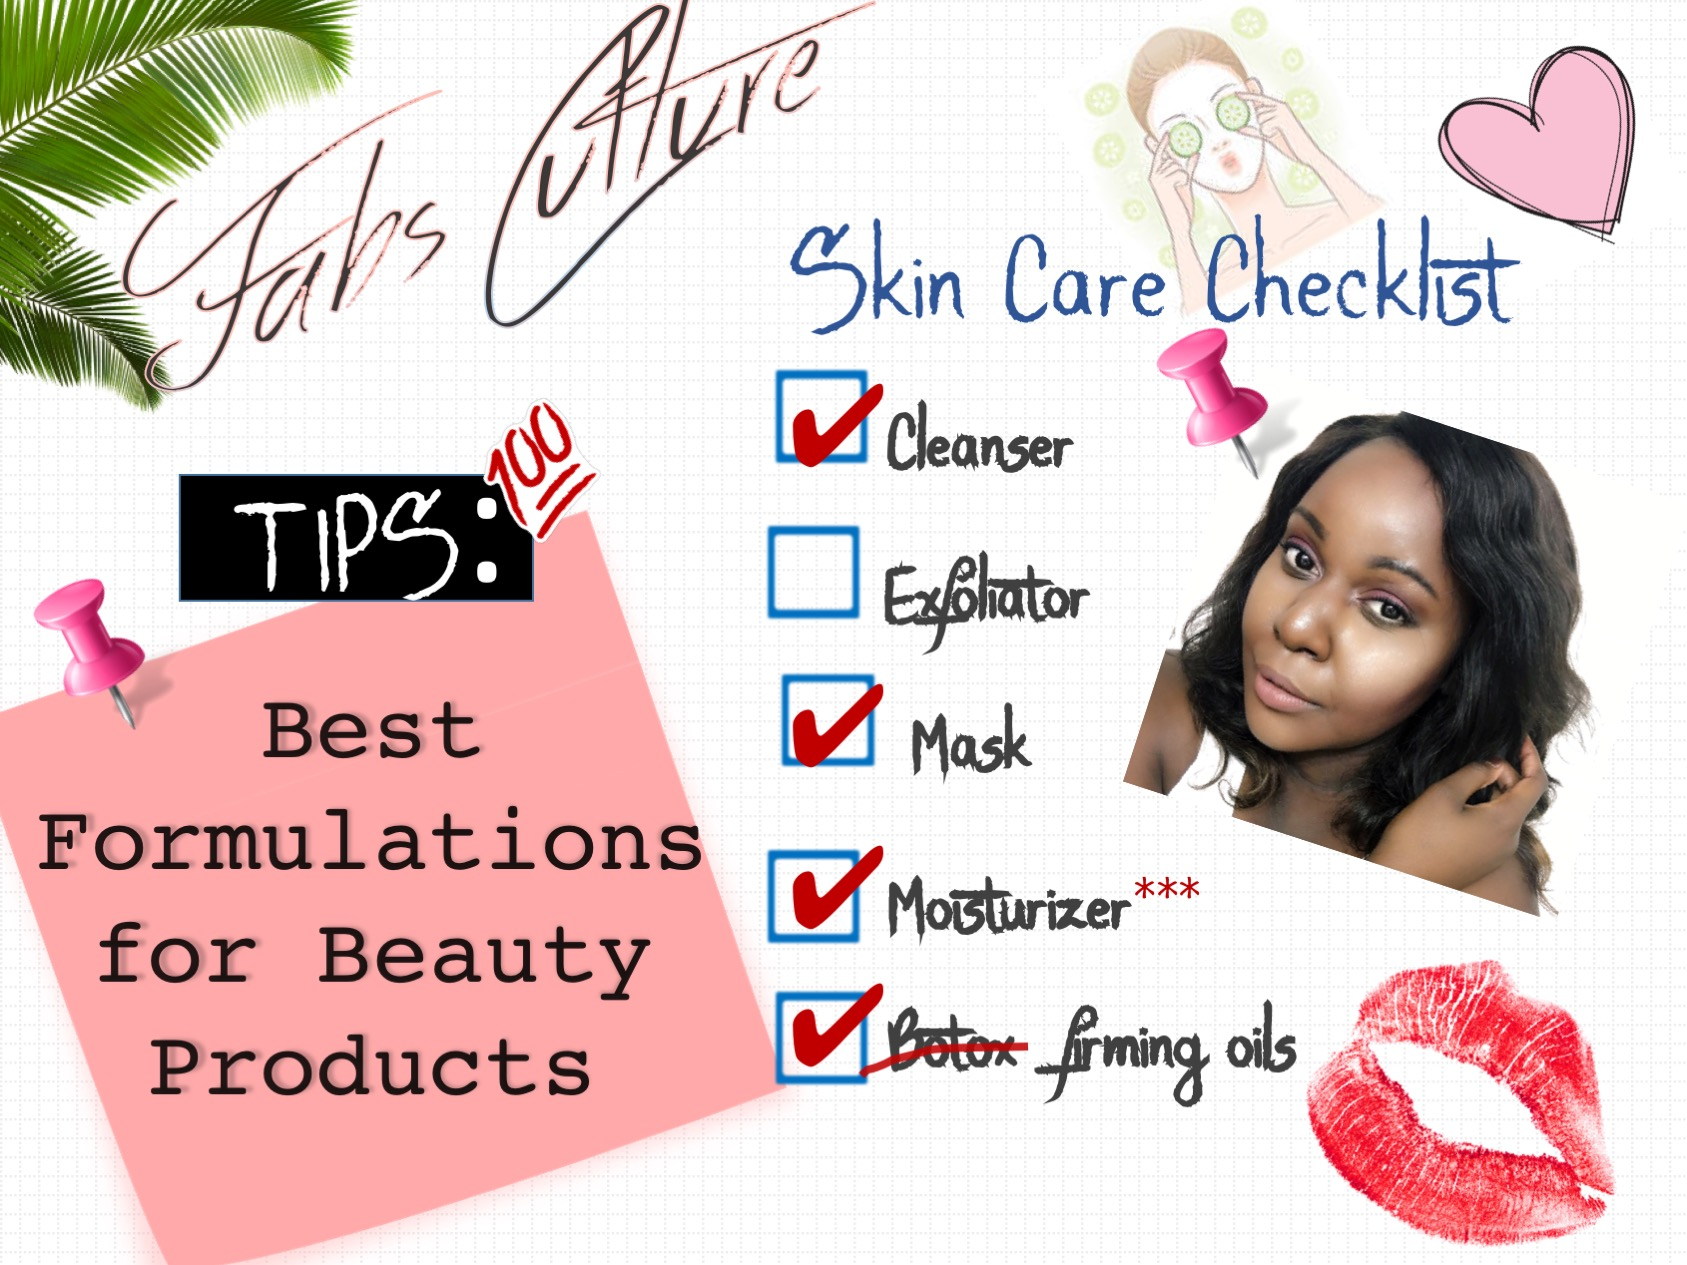 best formulations for beauty products, skin care for oily clear skin, affordable cutting costs on beauty products